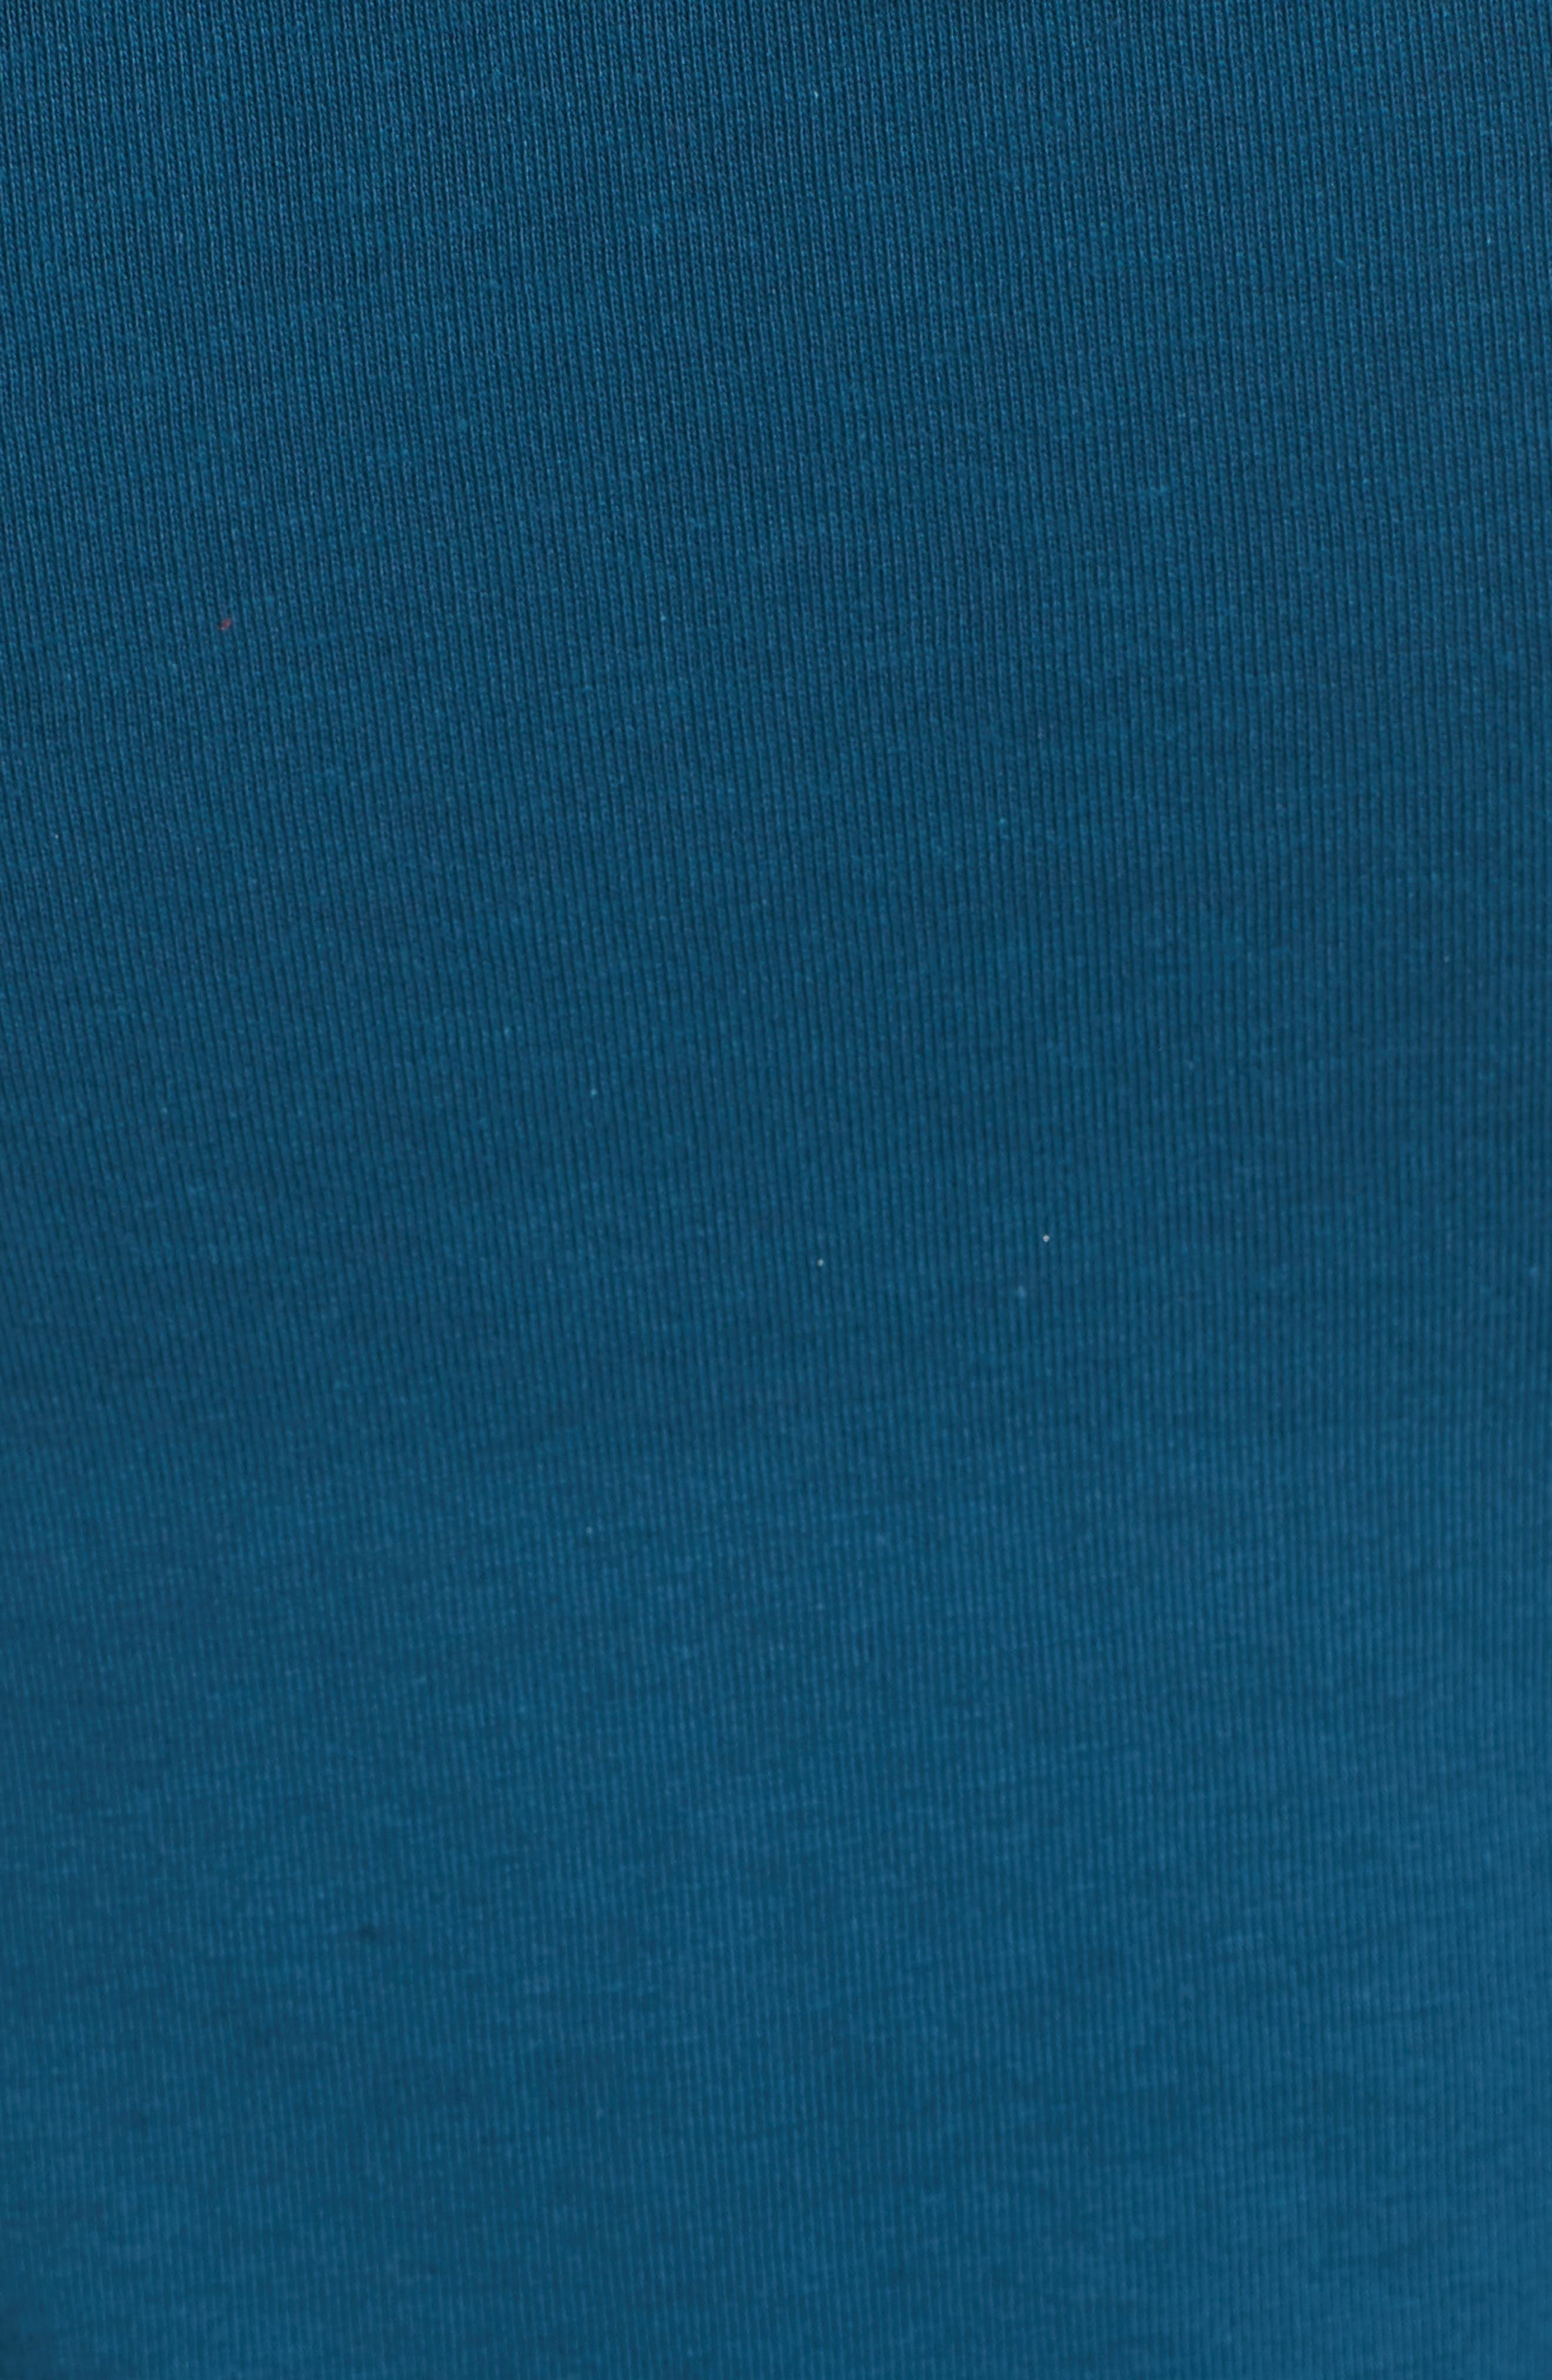 Ruched Body-Con Tank Dress,                             Alternate thumbnail 6, color,                             Teal Seagate